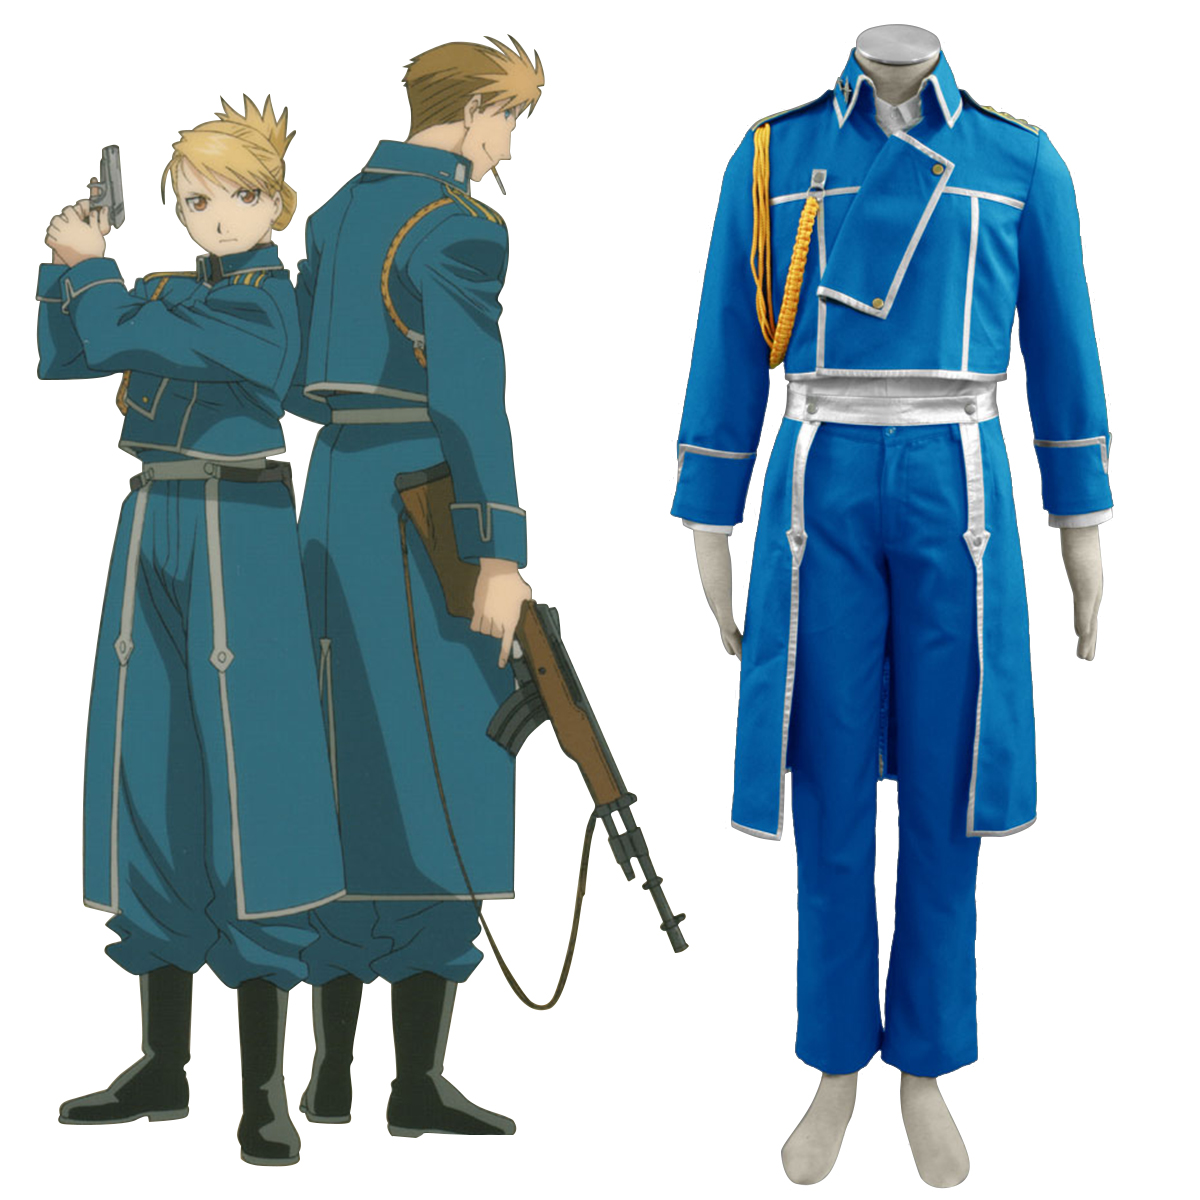 Fullmetal Alchemist Male Military Uniform Anime Cosplay Costumes Outfit